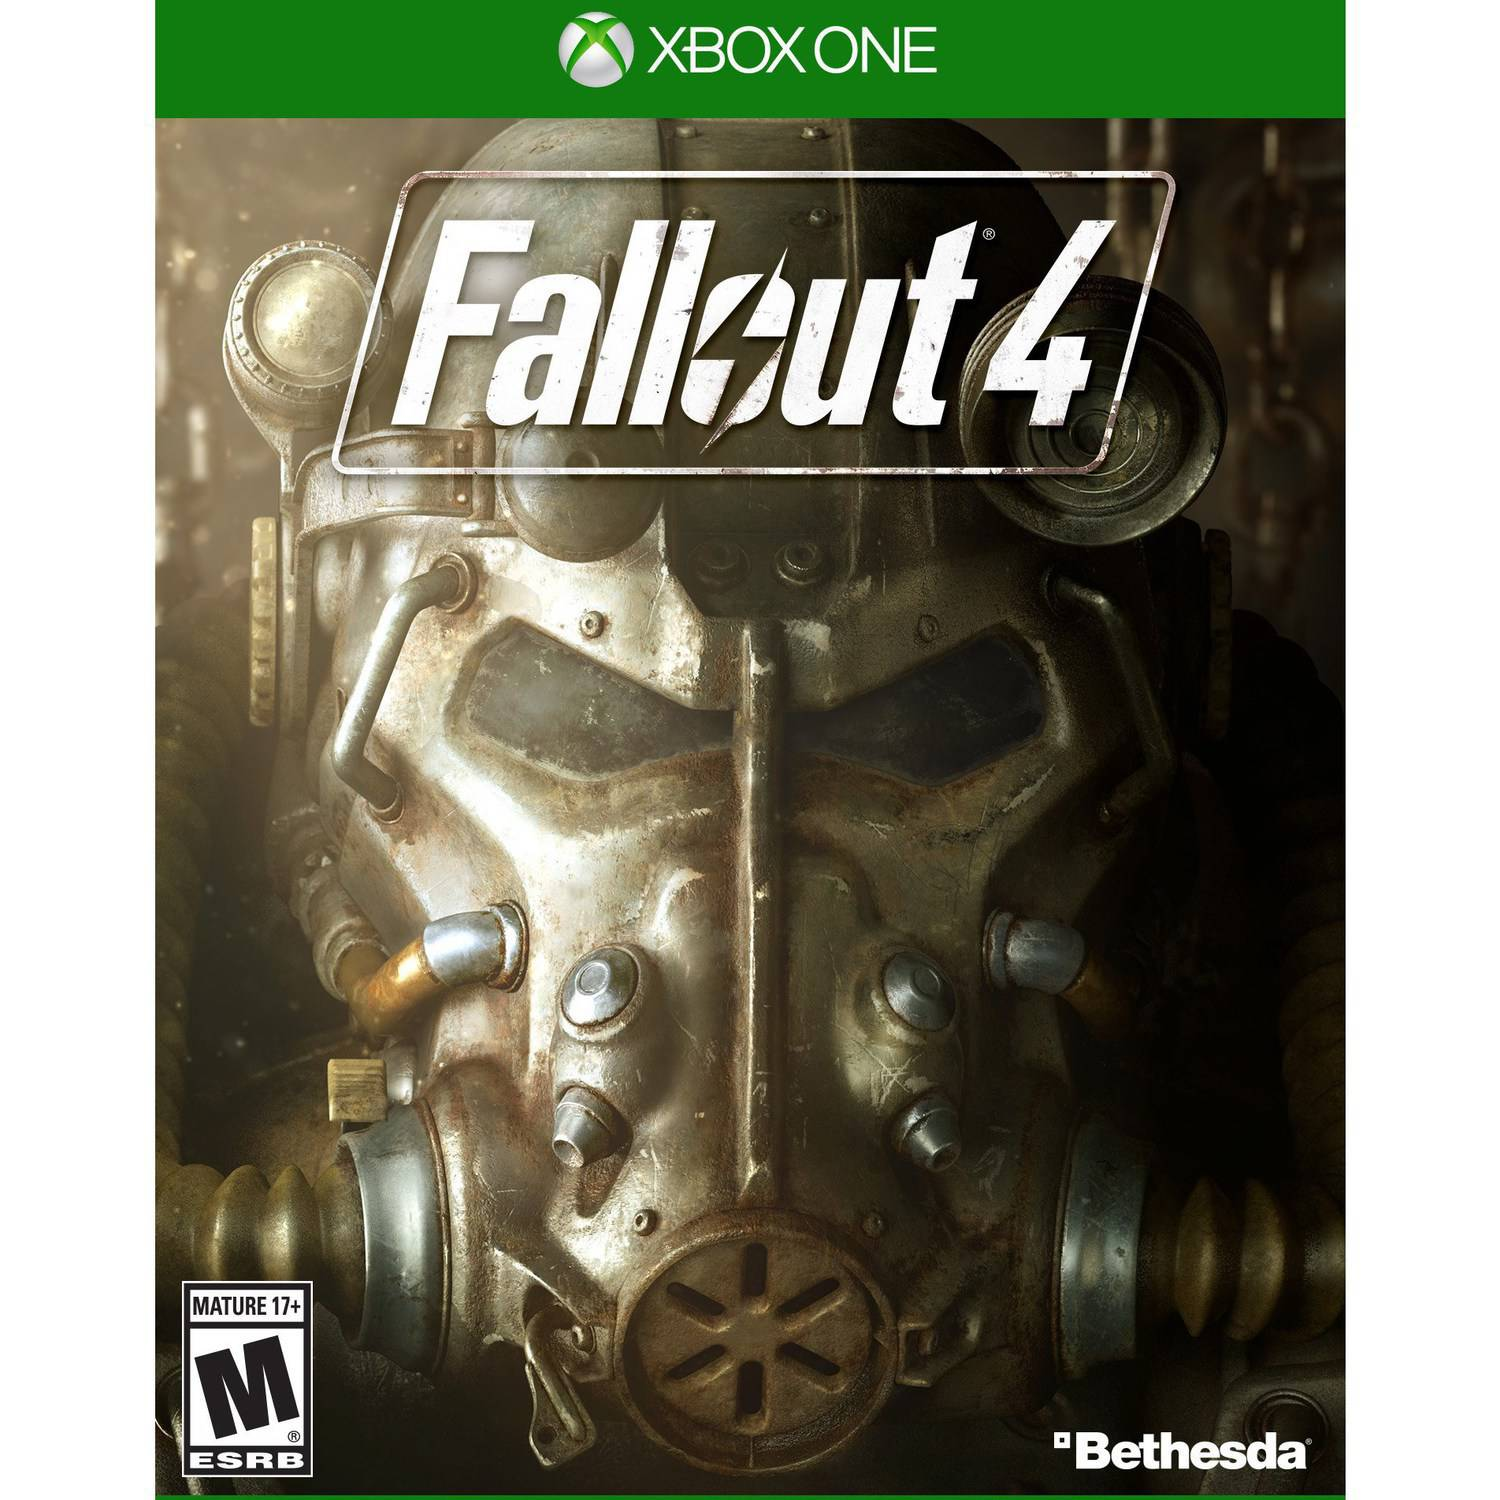 Fallout 4 (Xbox One) - Pre-Owned